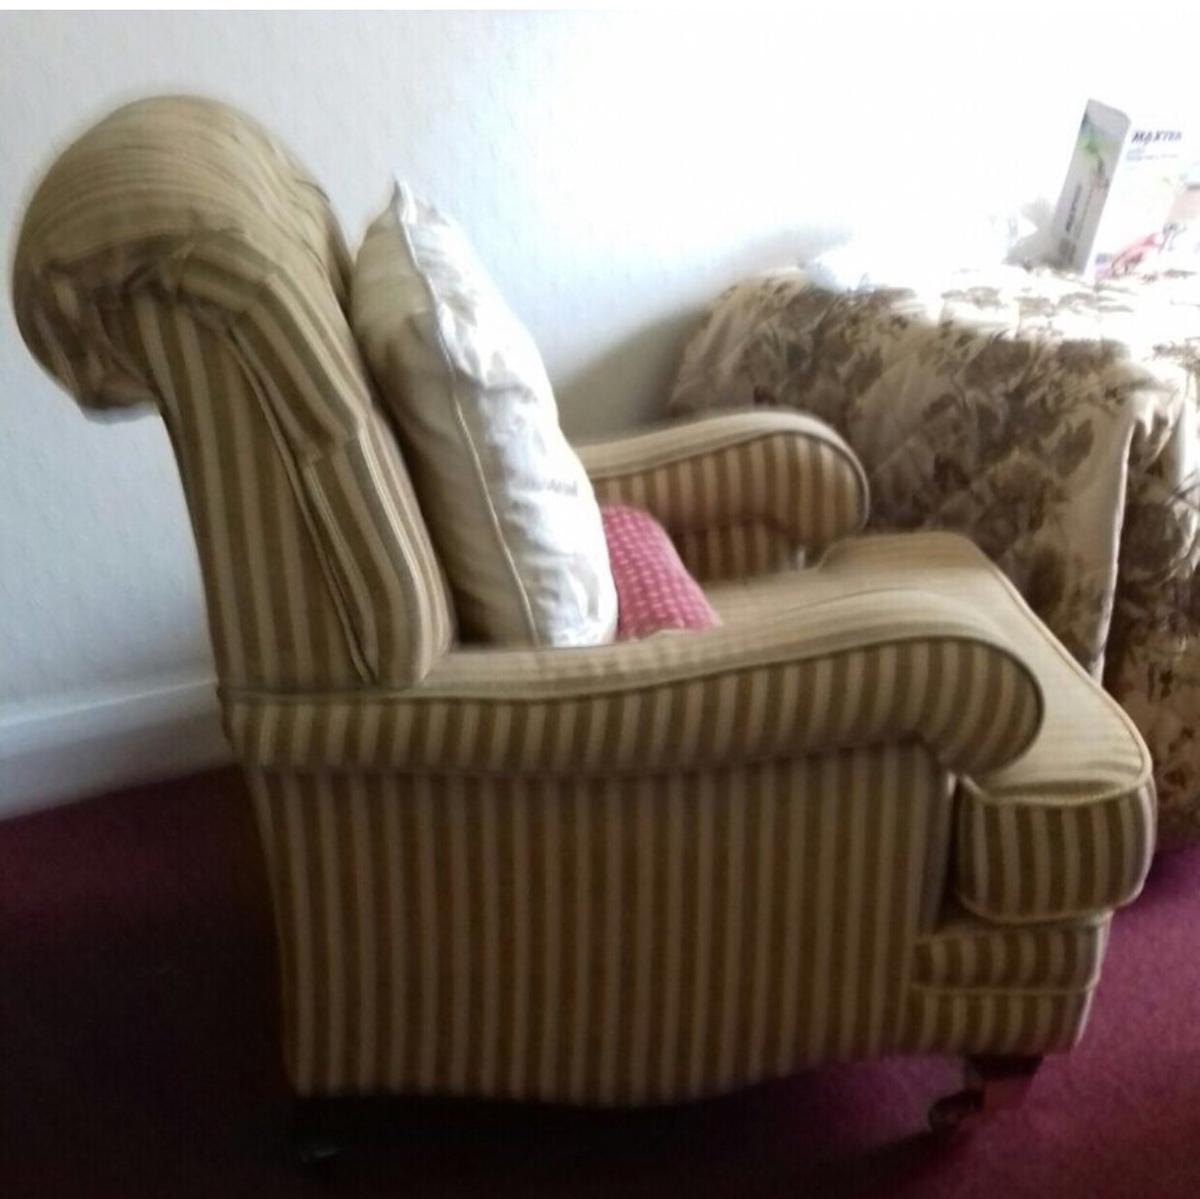 Strange Laura Ashley Style Sofa And Chairs In La5 Lancaster For Onthecornerstone Fun Painted Chair Ideas Images Onthecornerstoneorg